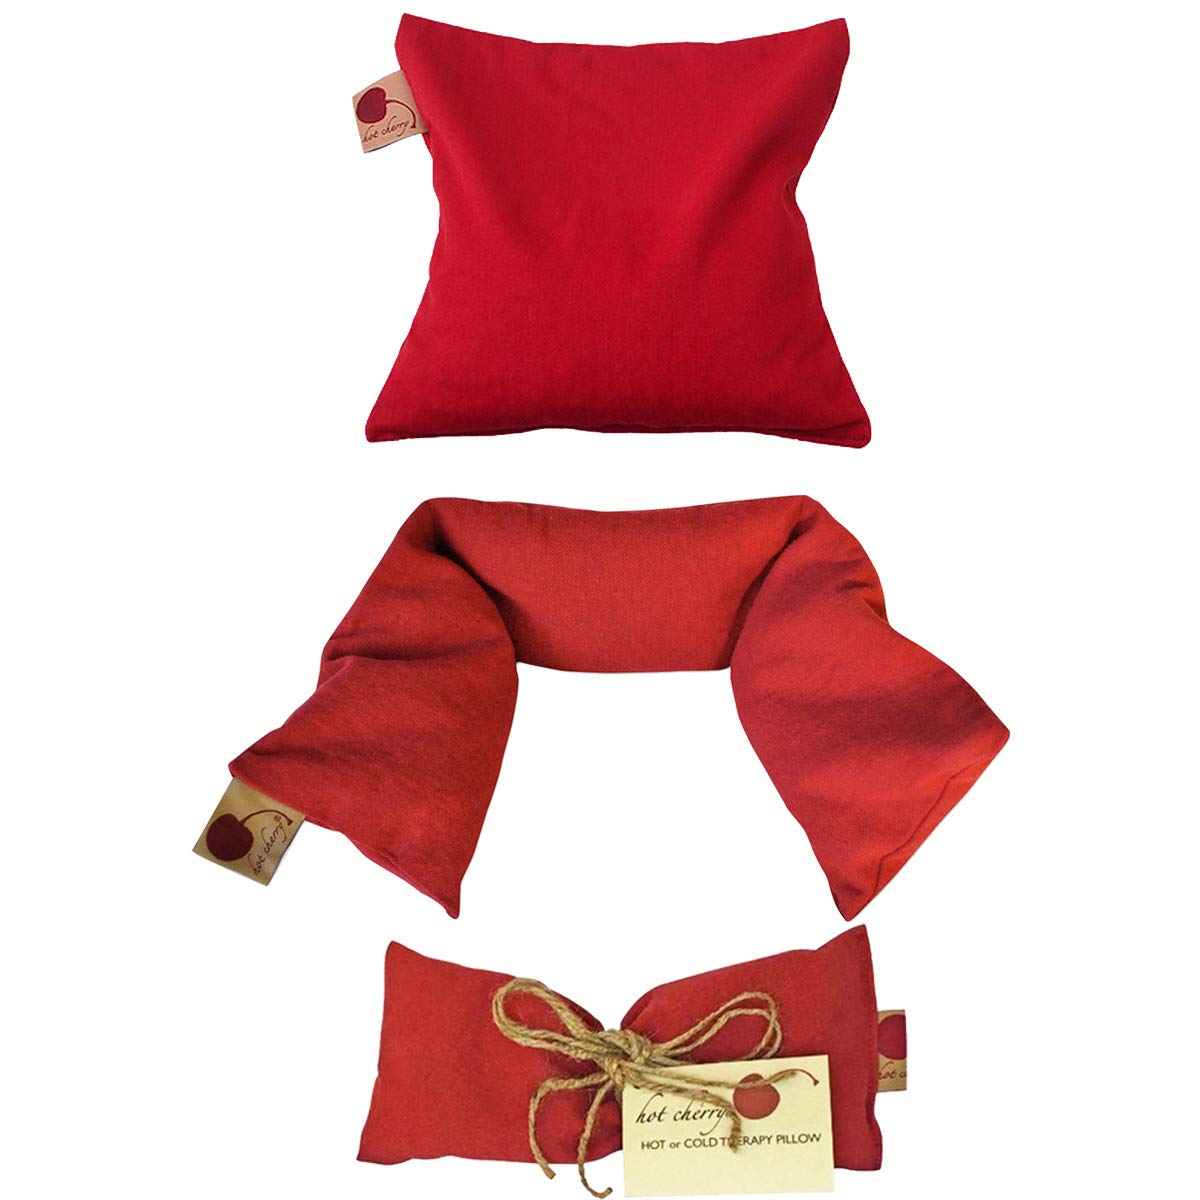 Hot Cherry Pit Pillow Holiday Gift Bundles (Feel Better Pack - Red Denim) 20% Off Individually Priced Items